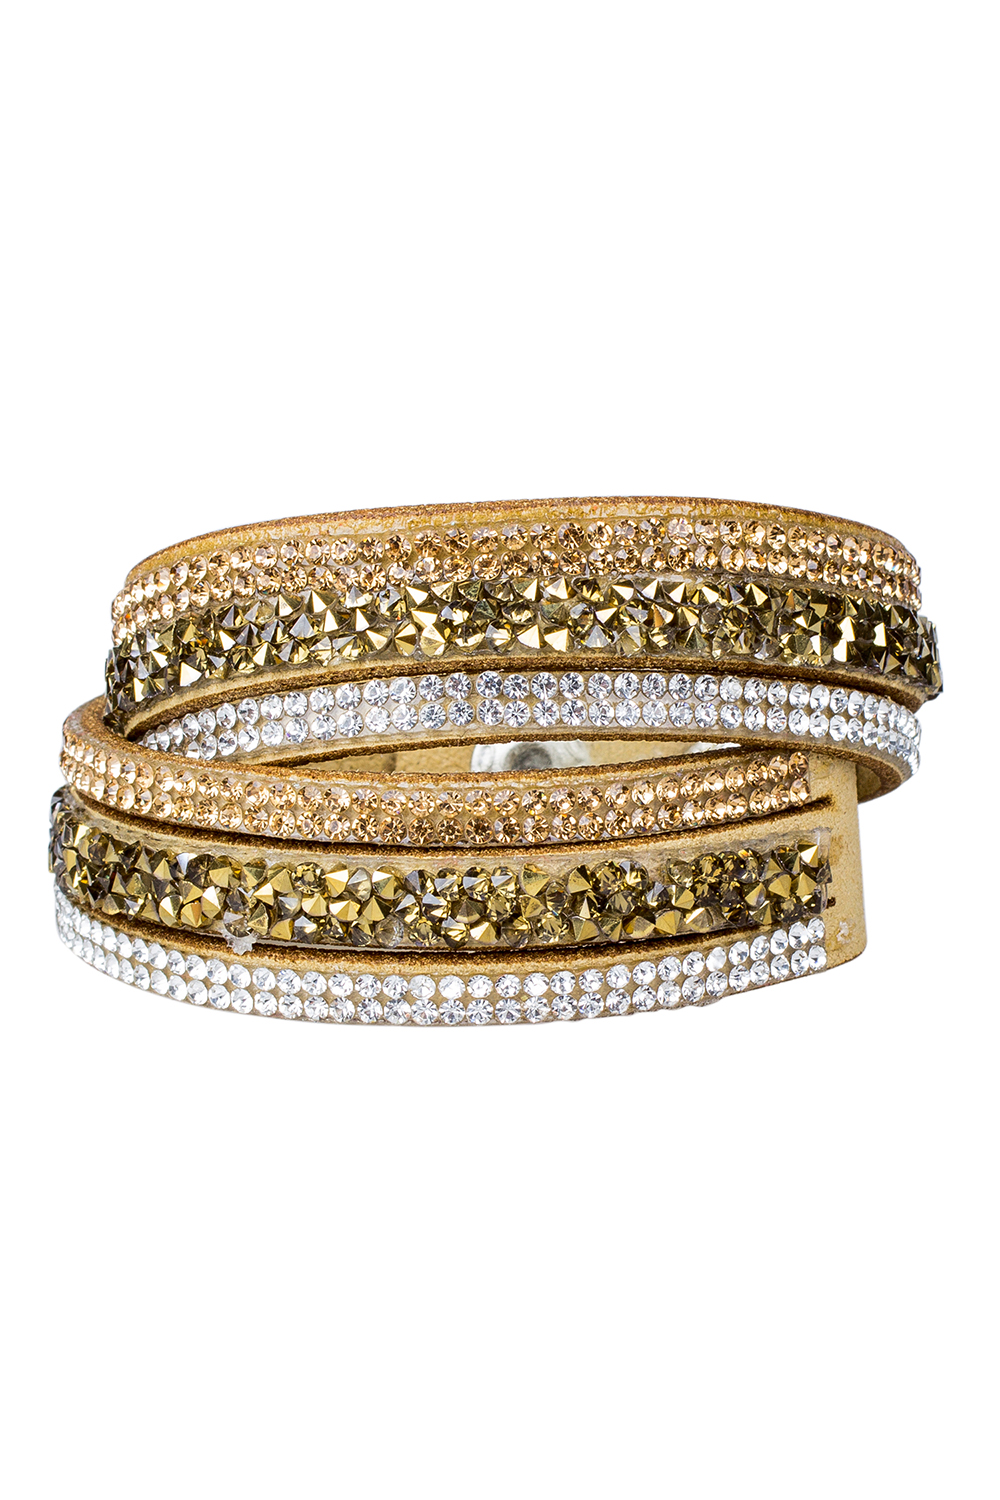 Men 39 s women 39 s rivets rhinestones multi layers faux leather for Rivets for leather jewelry